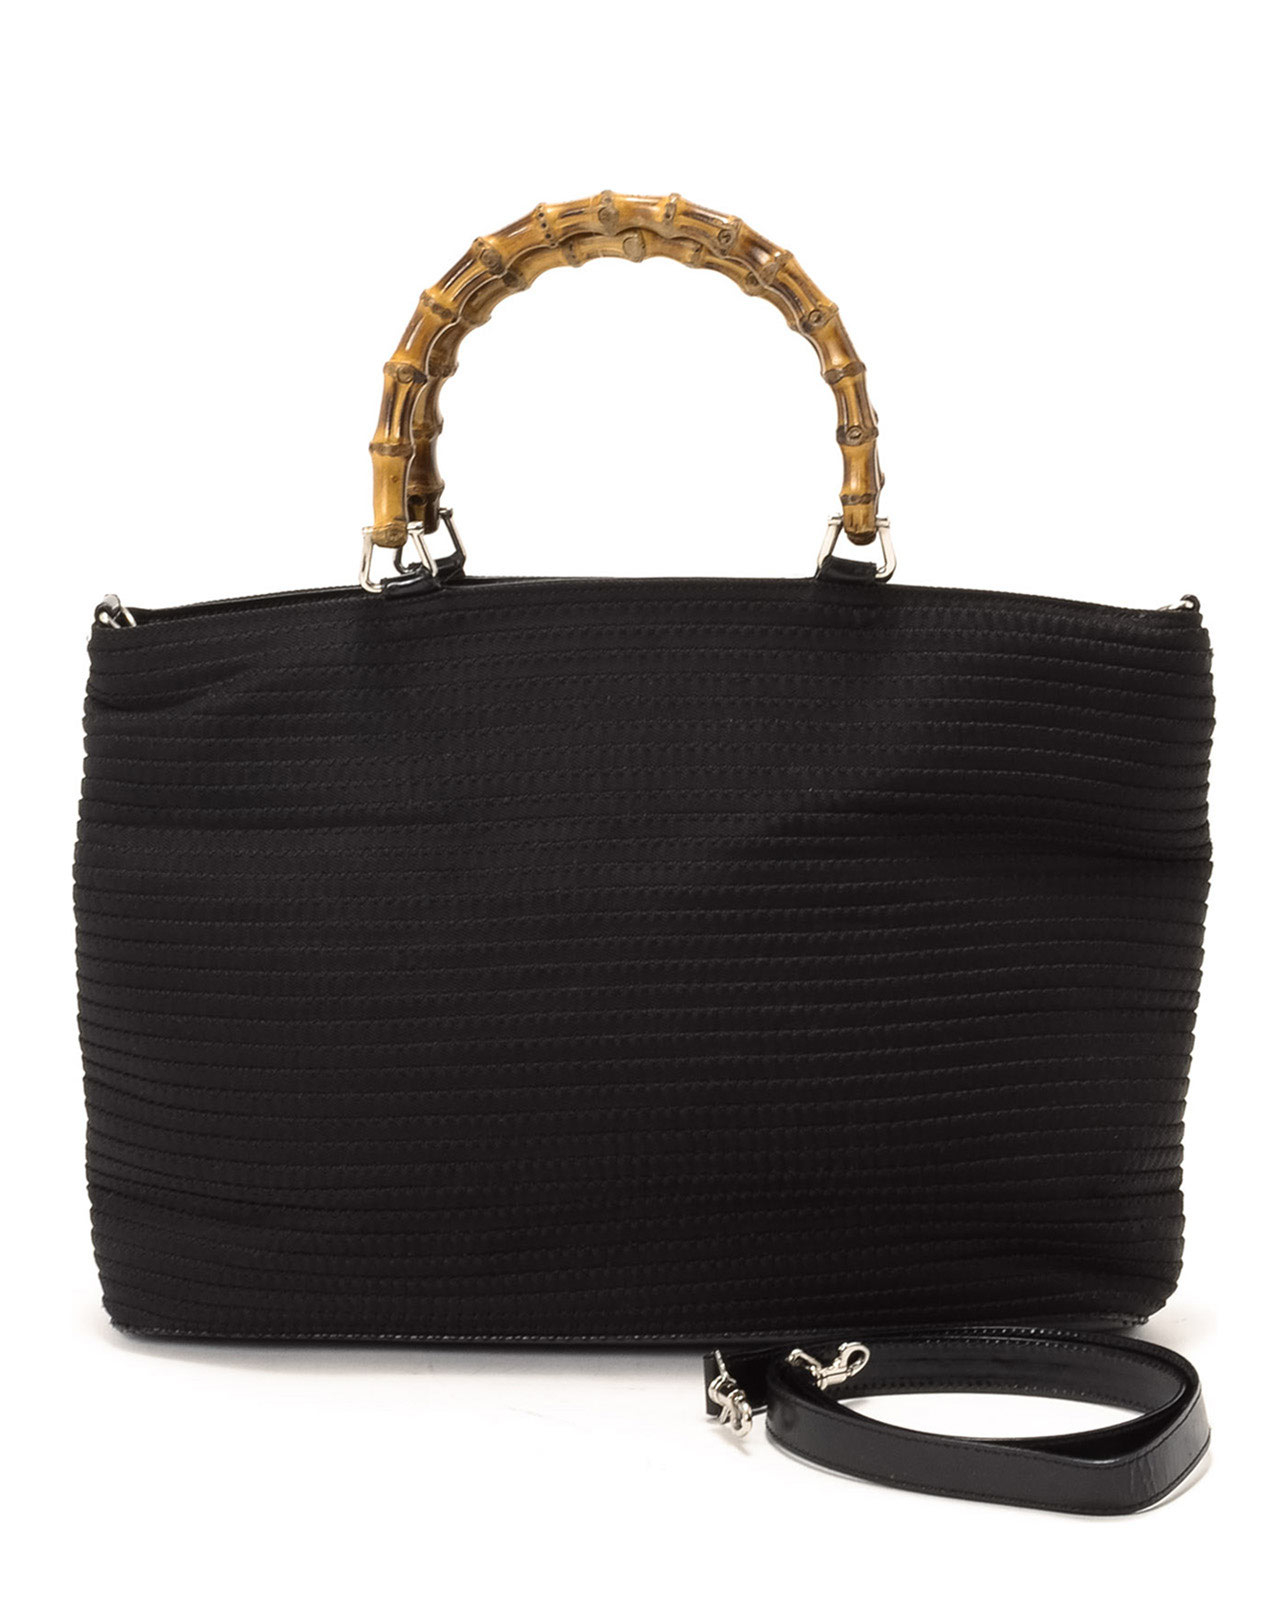 d2d9b7eda1112c Gucci Bamboo Two Way Bag in Black - Lyst